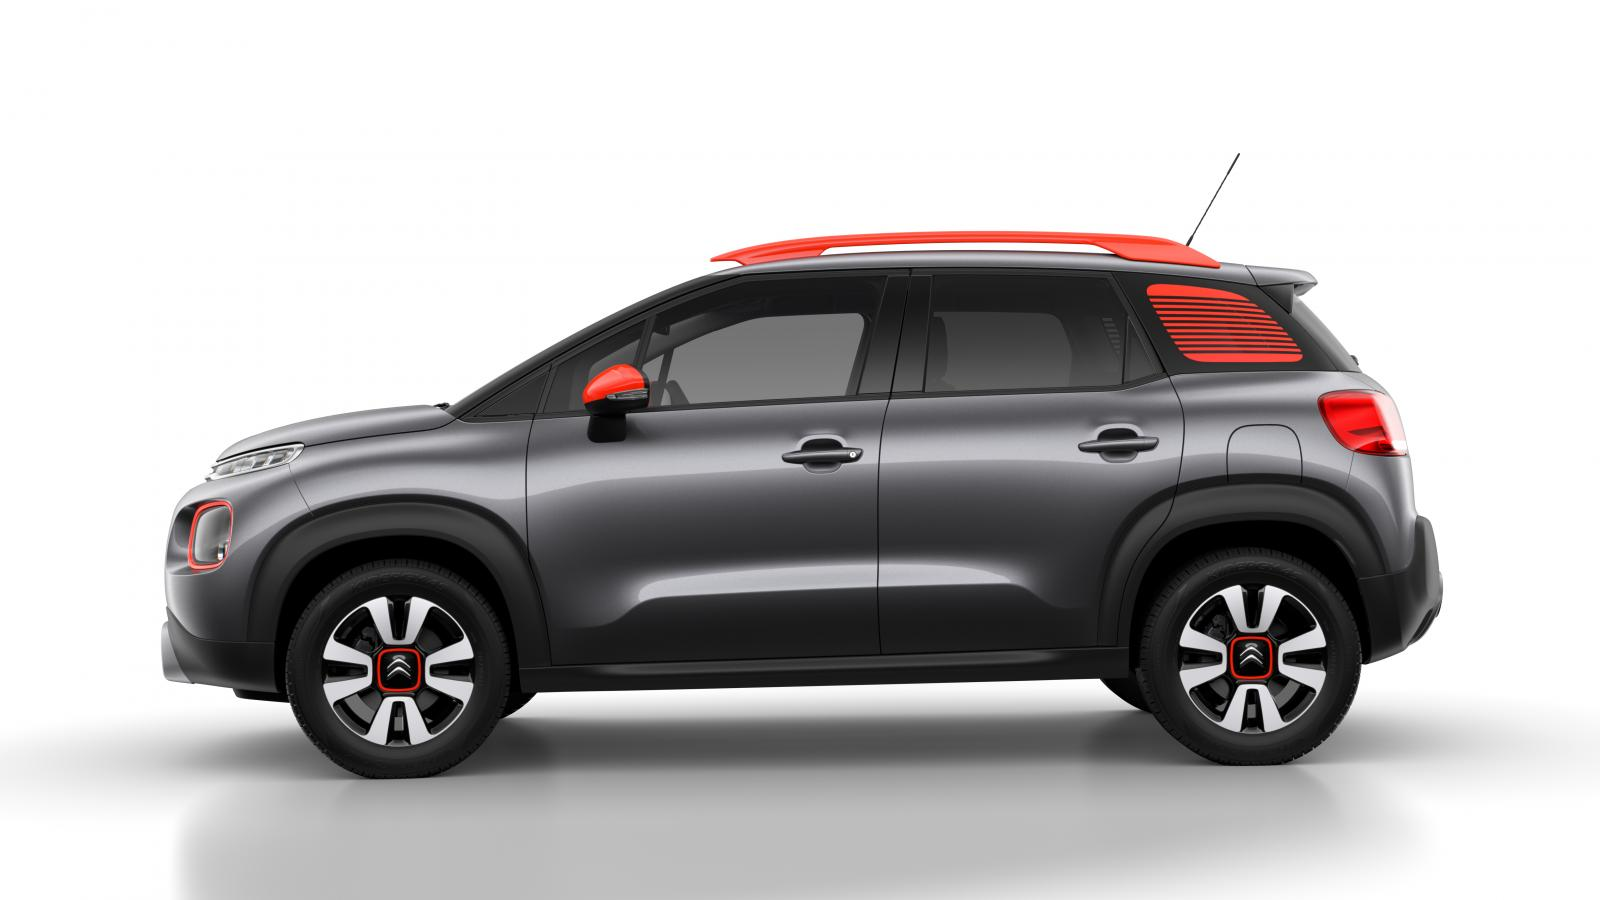 SUV Compact C3 Aircross Misty Grey